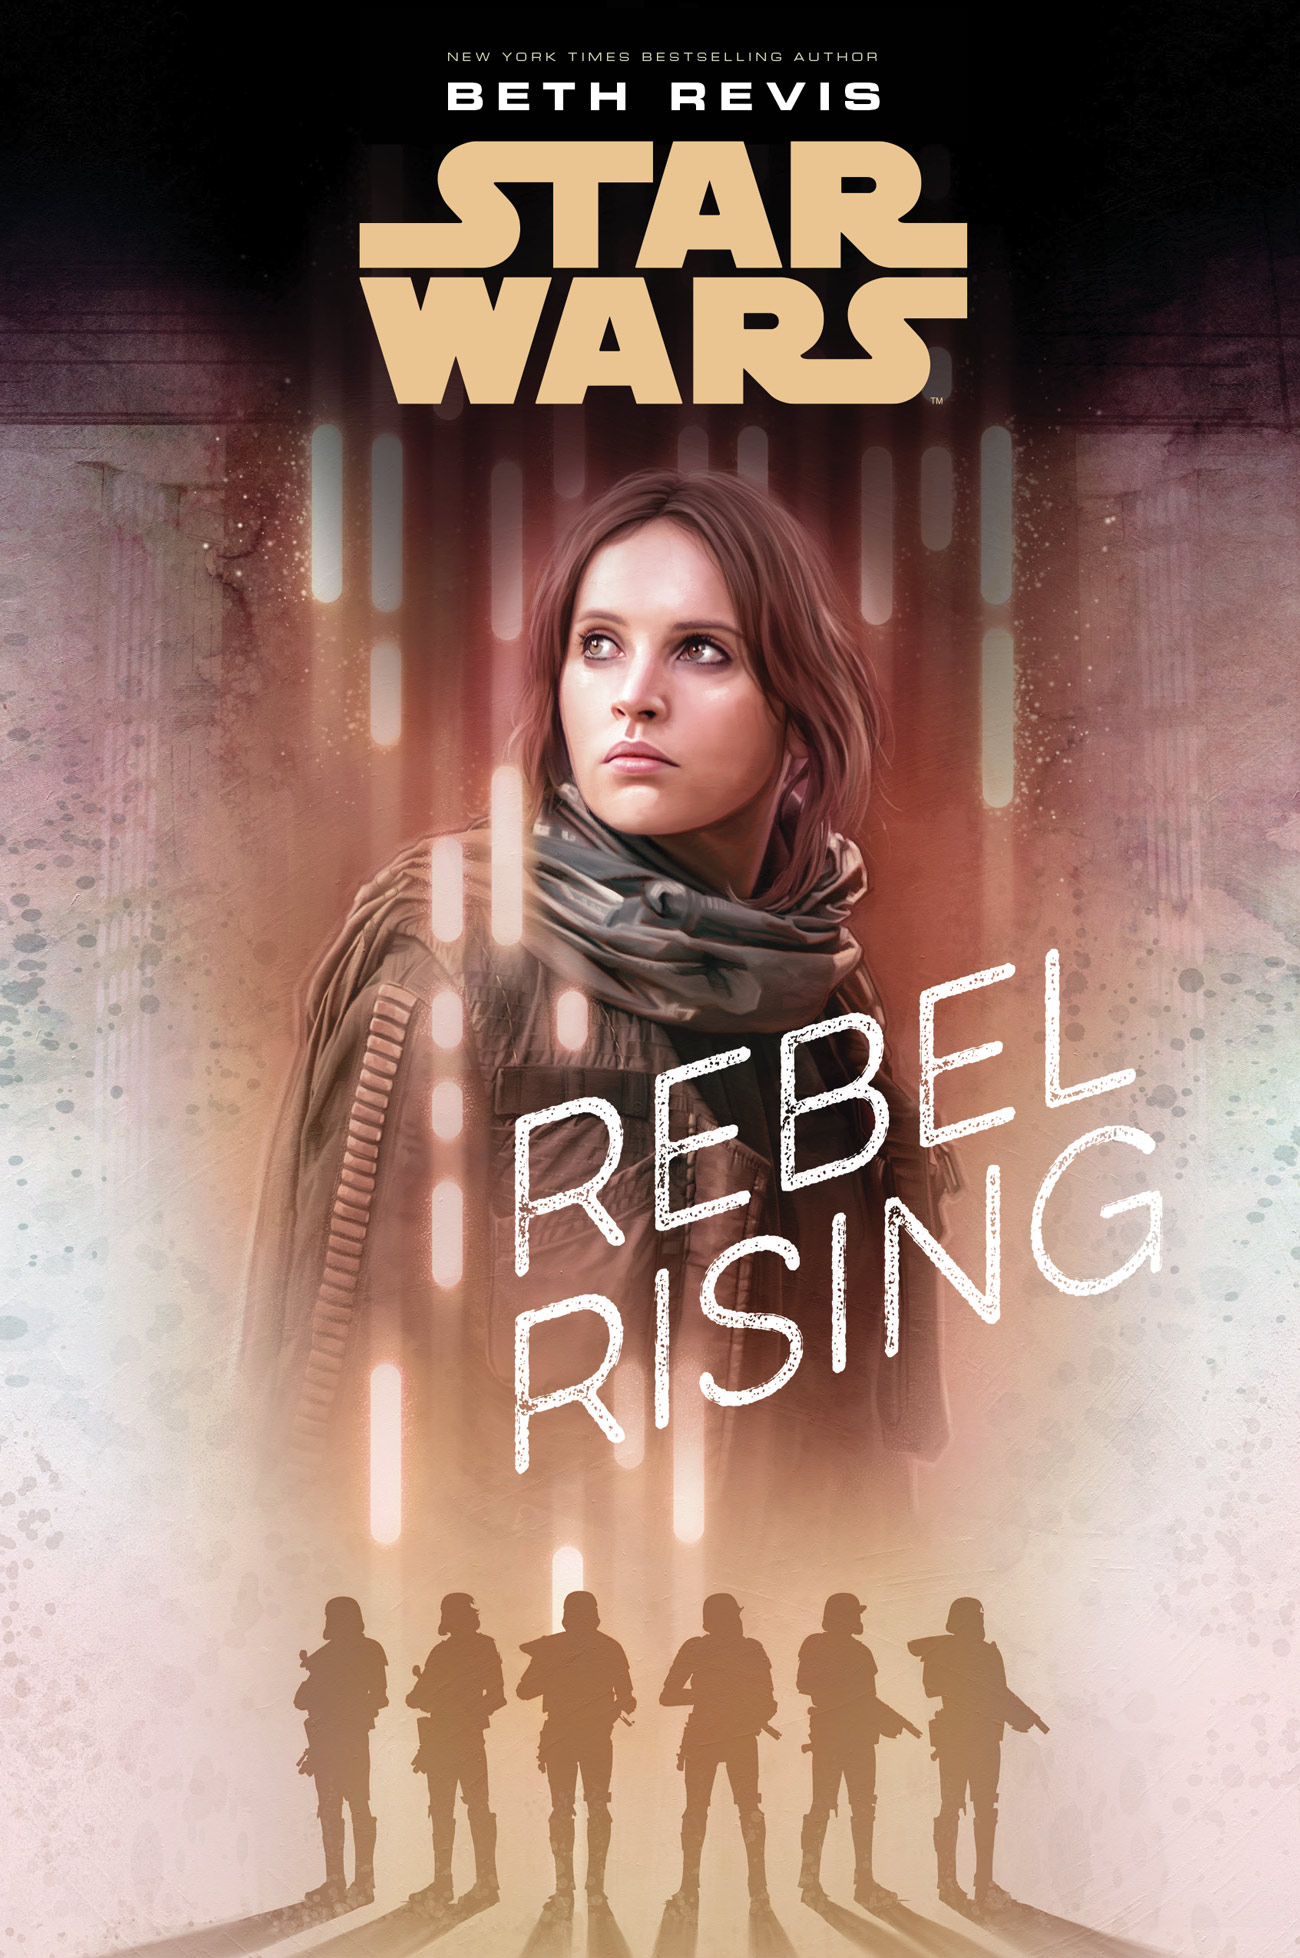 'Star Wars: Rebel Rising' review: A lengthy, unexpectedly adult Jyn Erso story